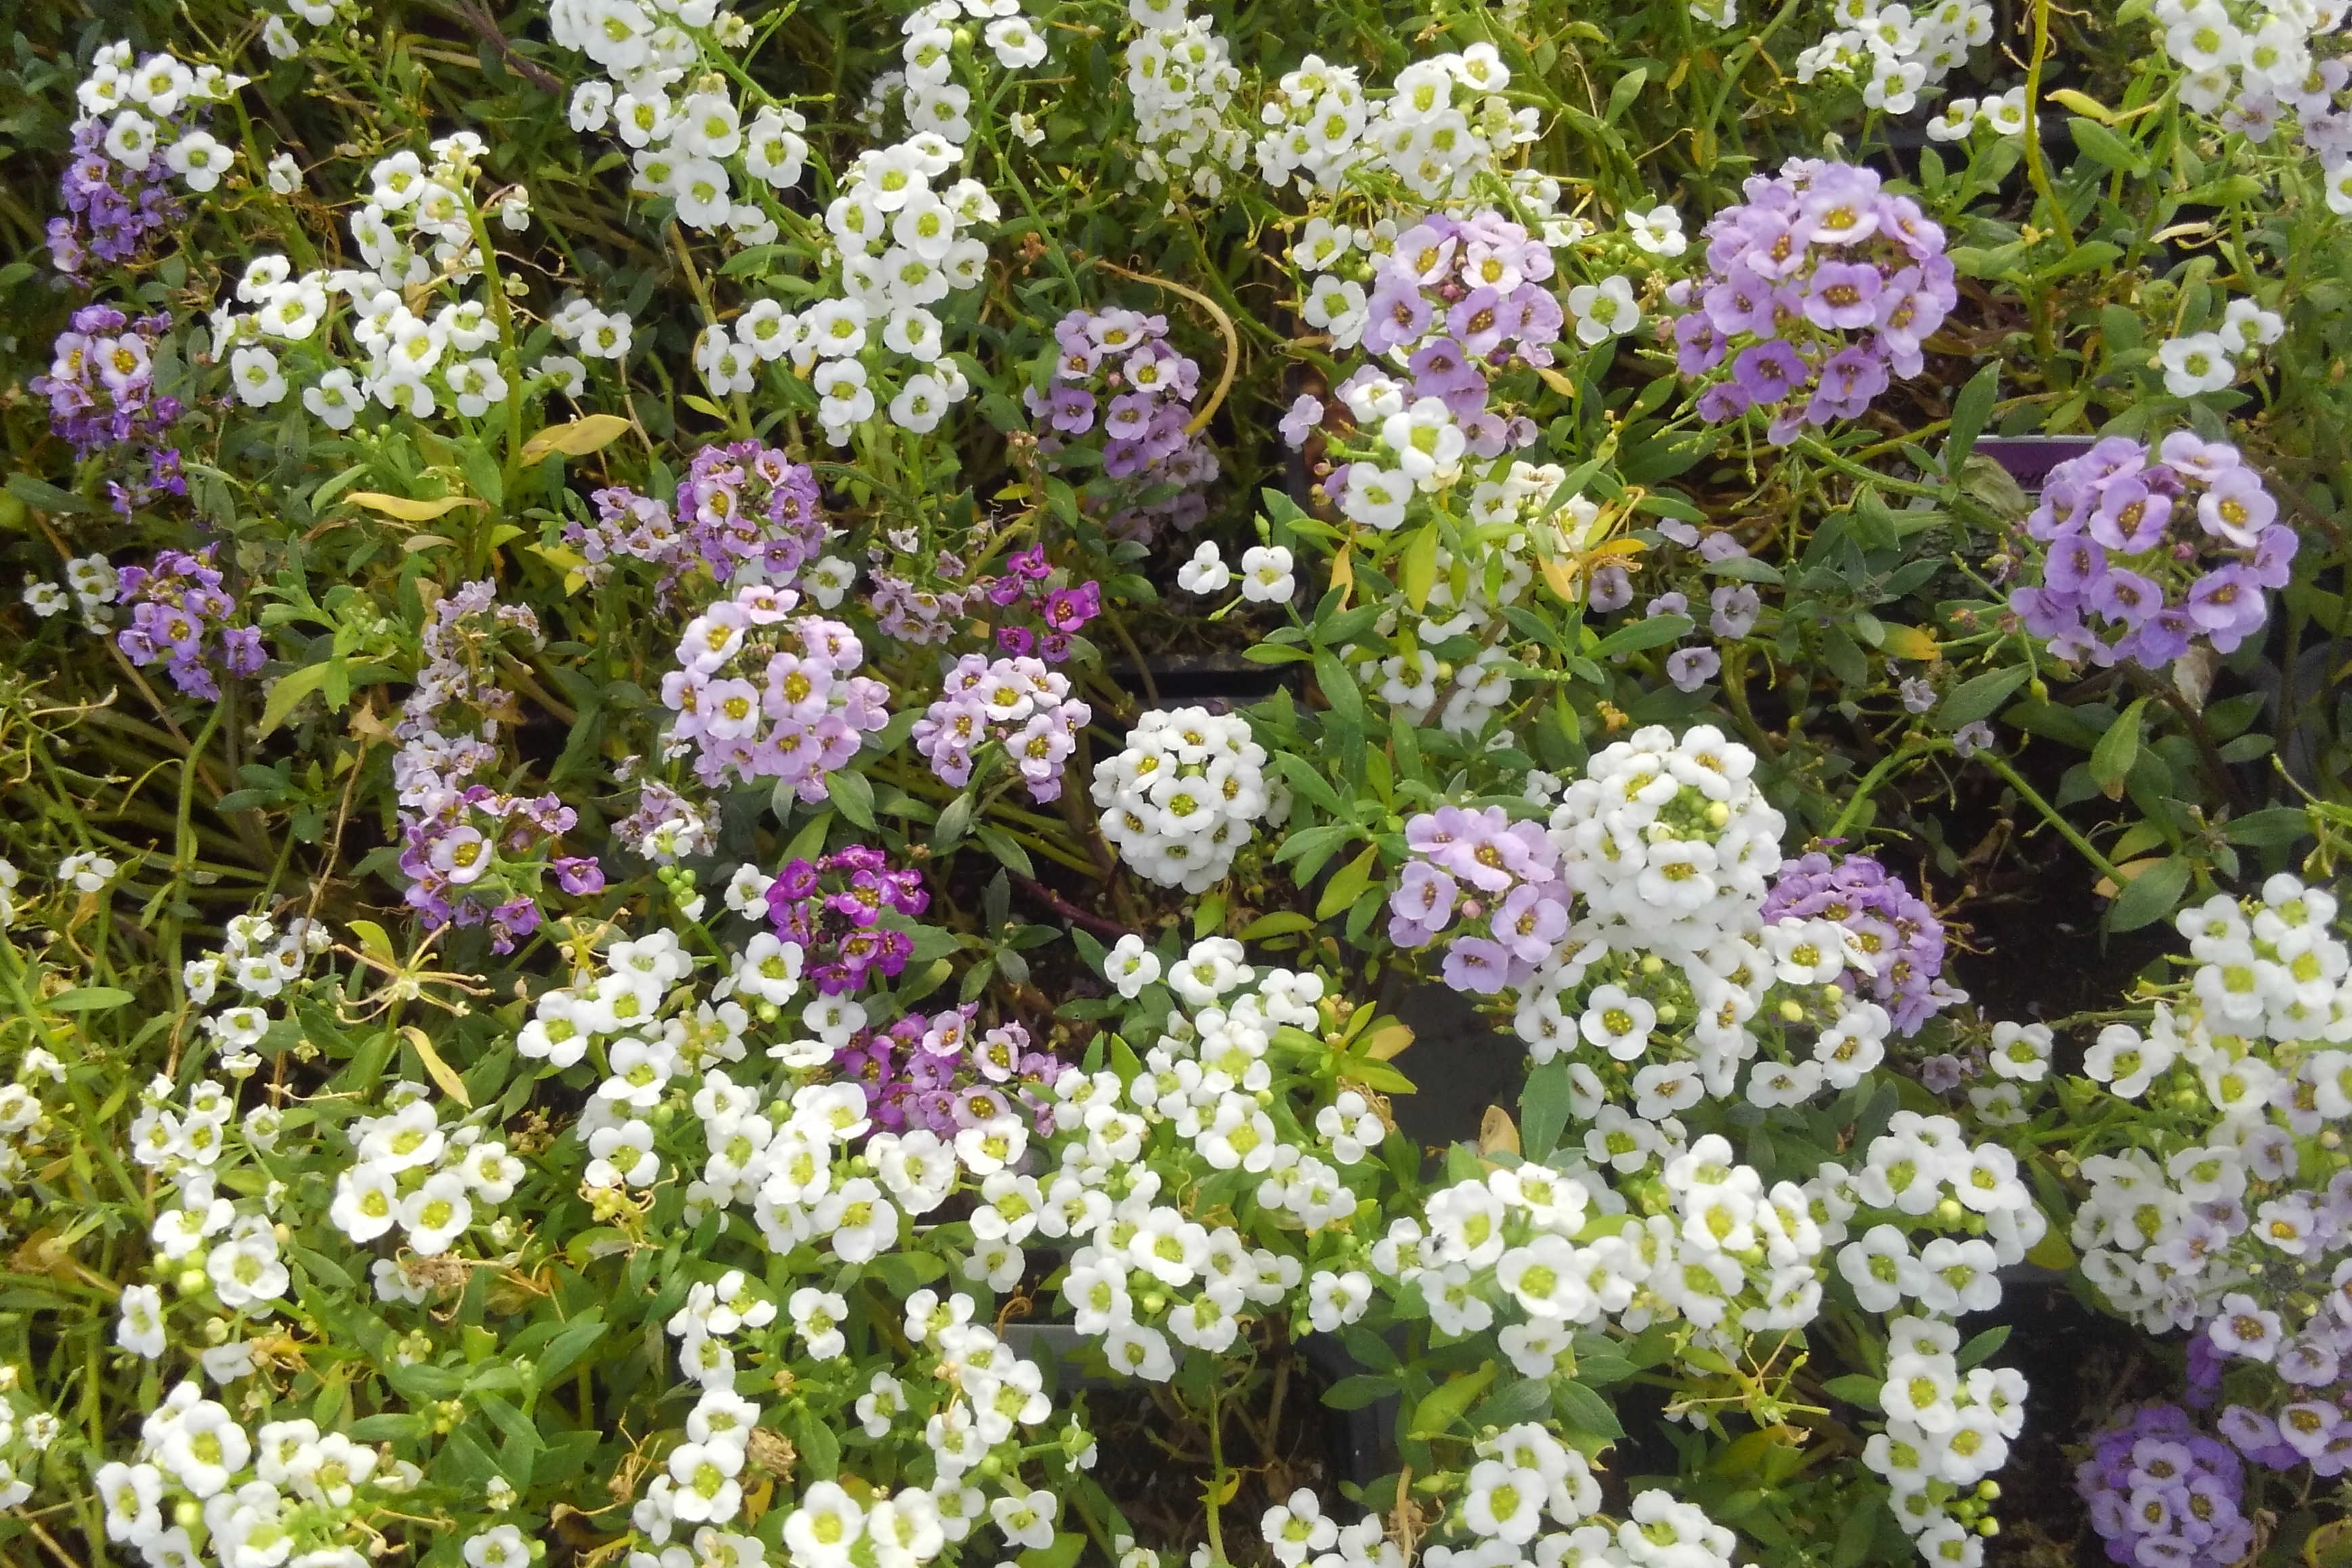 Groundcover like Jasmine, Creeping Jenny, Mexican Heather and more available Madison Gardens Nursery, Spring, TX